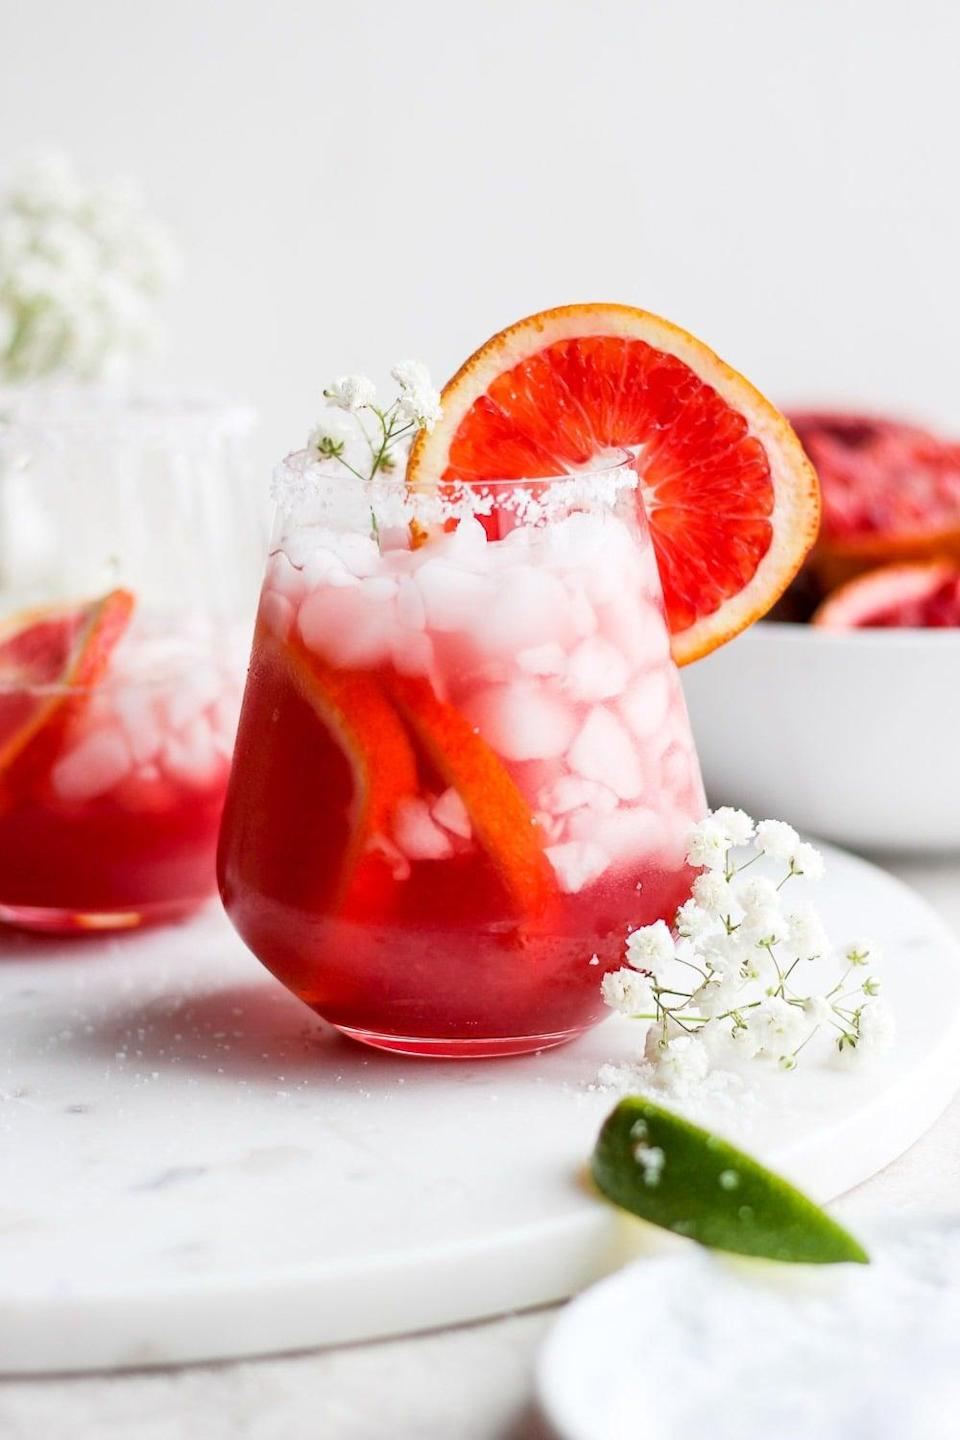 """<p>Give happy hour a whole new meaning when you sip on these blood-orange margaritas. They're easy to make, super refreshing, and unlike any marg you've ever had before. Cheers, Connecticut!</p> <p><strong>Get the recipe</strong>: <a href=""""https://www.popsugar.com/buy?url=https%3A%2F%2Ffitfoodiefinds.com%2Fblood-orange-margarita%2F&p_name=blood%20orange%20margarita&retailer=fitfoodiefinds.com&evar1=yum%3Aus&evar9=47471653&evar98=https%3A%2F%2Fwww.popsugar.com%2Ffood%2Fphoto-gallery%2F47471653%2Fimage%2F47473510%2FConnecticut-Margarita&list1=cocktails%2Cdrinks%2Calcohol%2Crecipes&prop13=api&pdata=1"""" class=""""link rapid-noclick-resp"""" rel=""""nofollow noopener"""" target=""""_blank"""" data-ylk=""""slk:blood orange margarita"""">blood orange margarita</a></p>"""